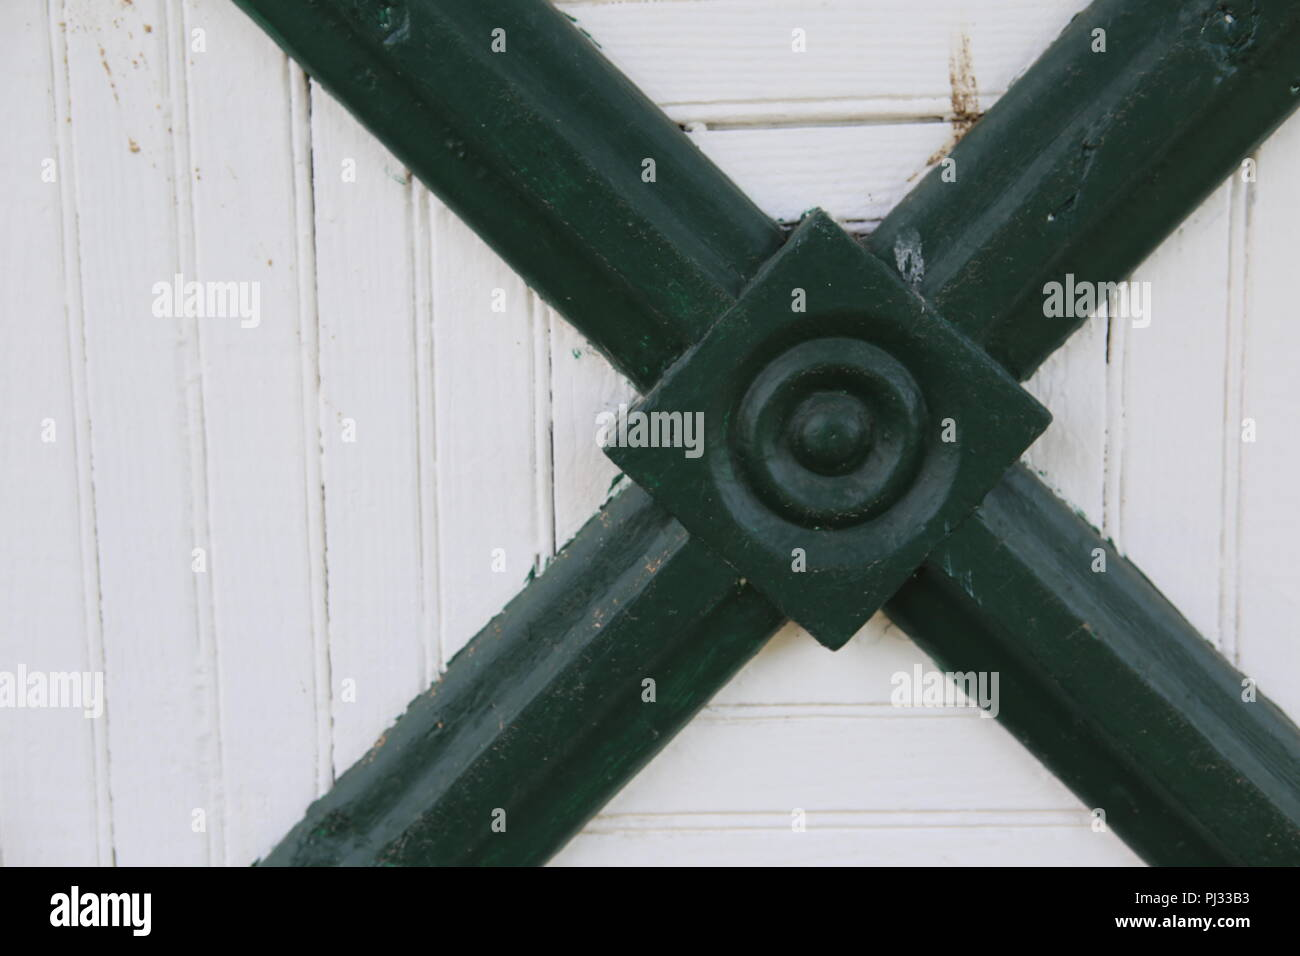 structural metal piece on old farm building - Stock Image